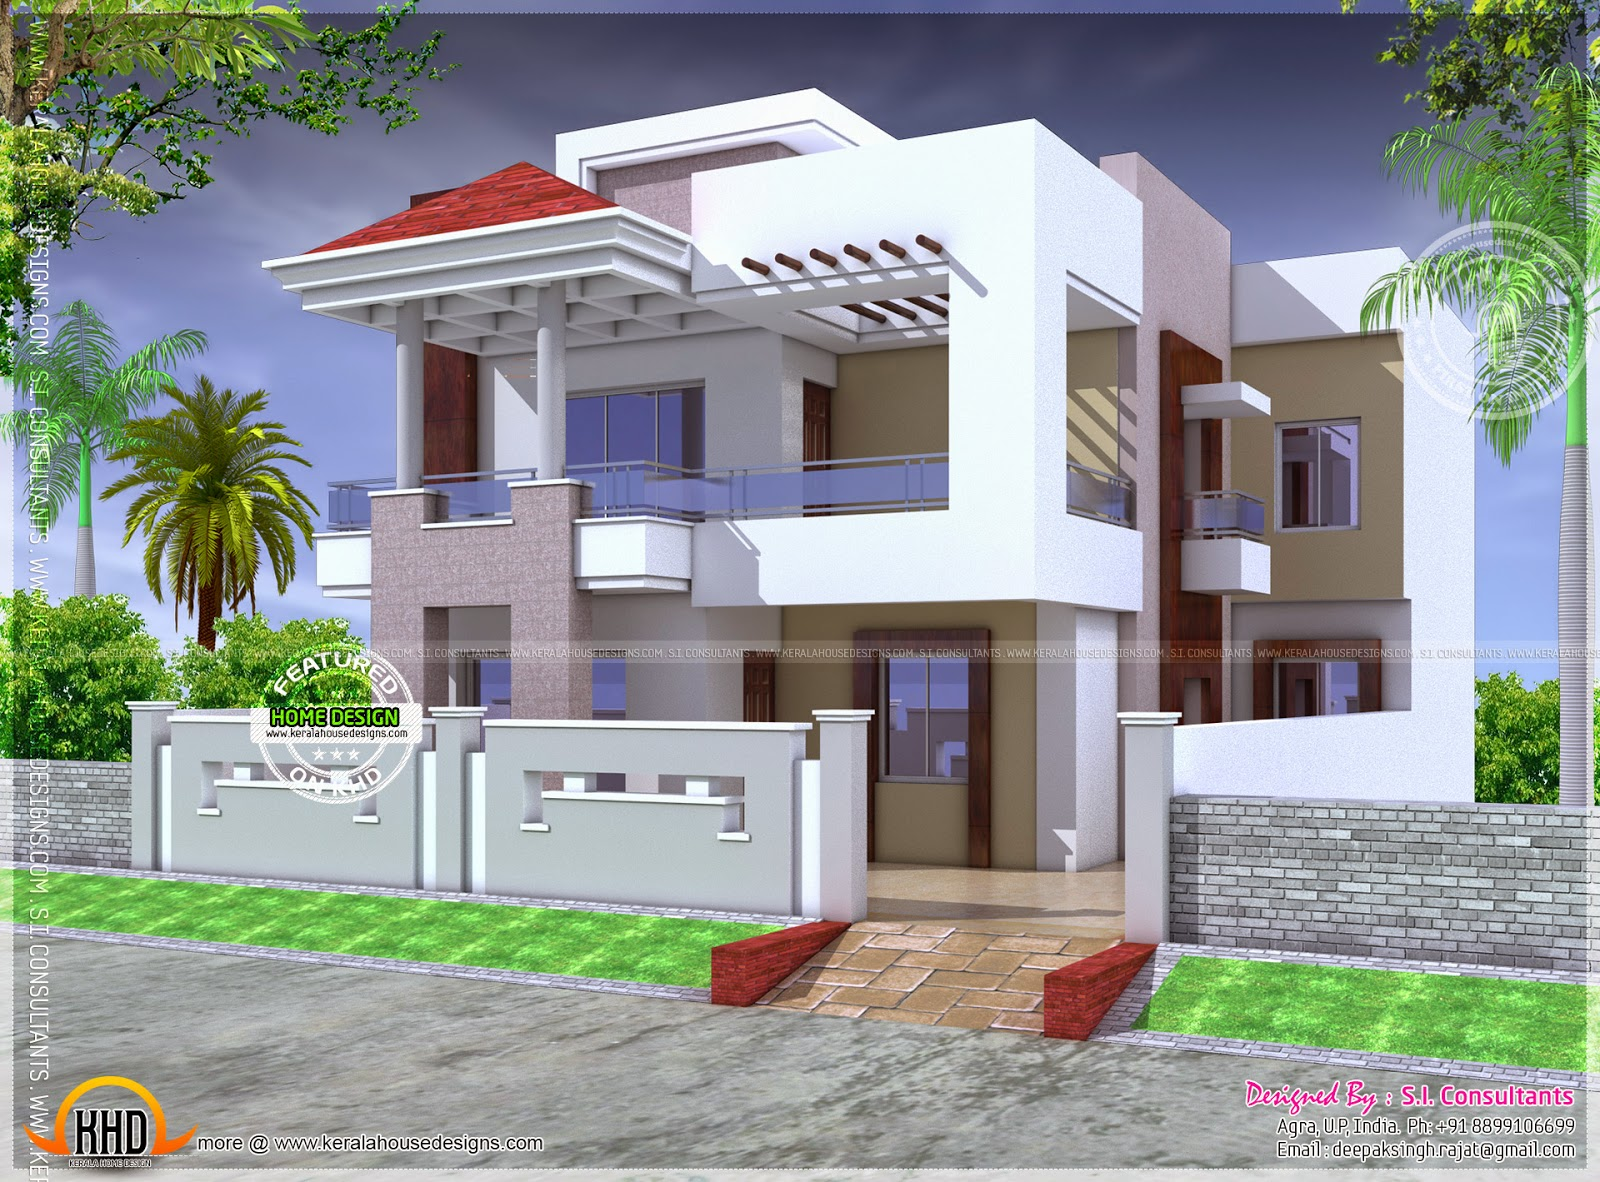 March 2014 kerala home design and floor plans for Arch design indian home plans